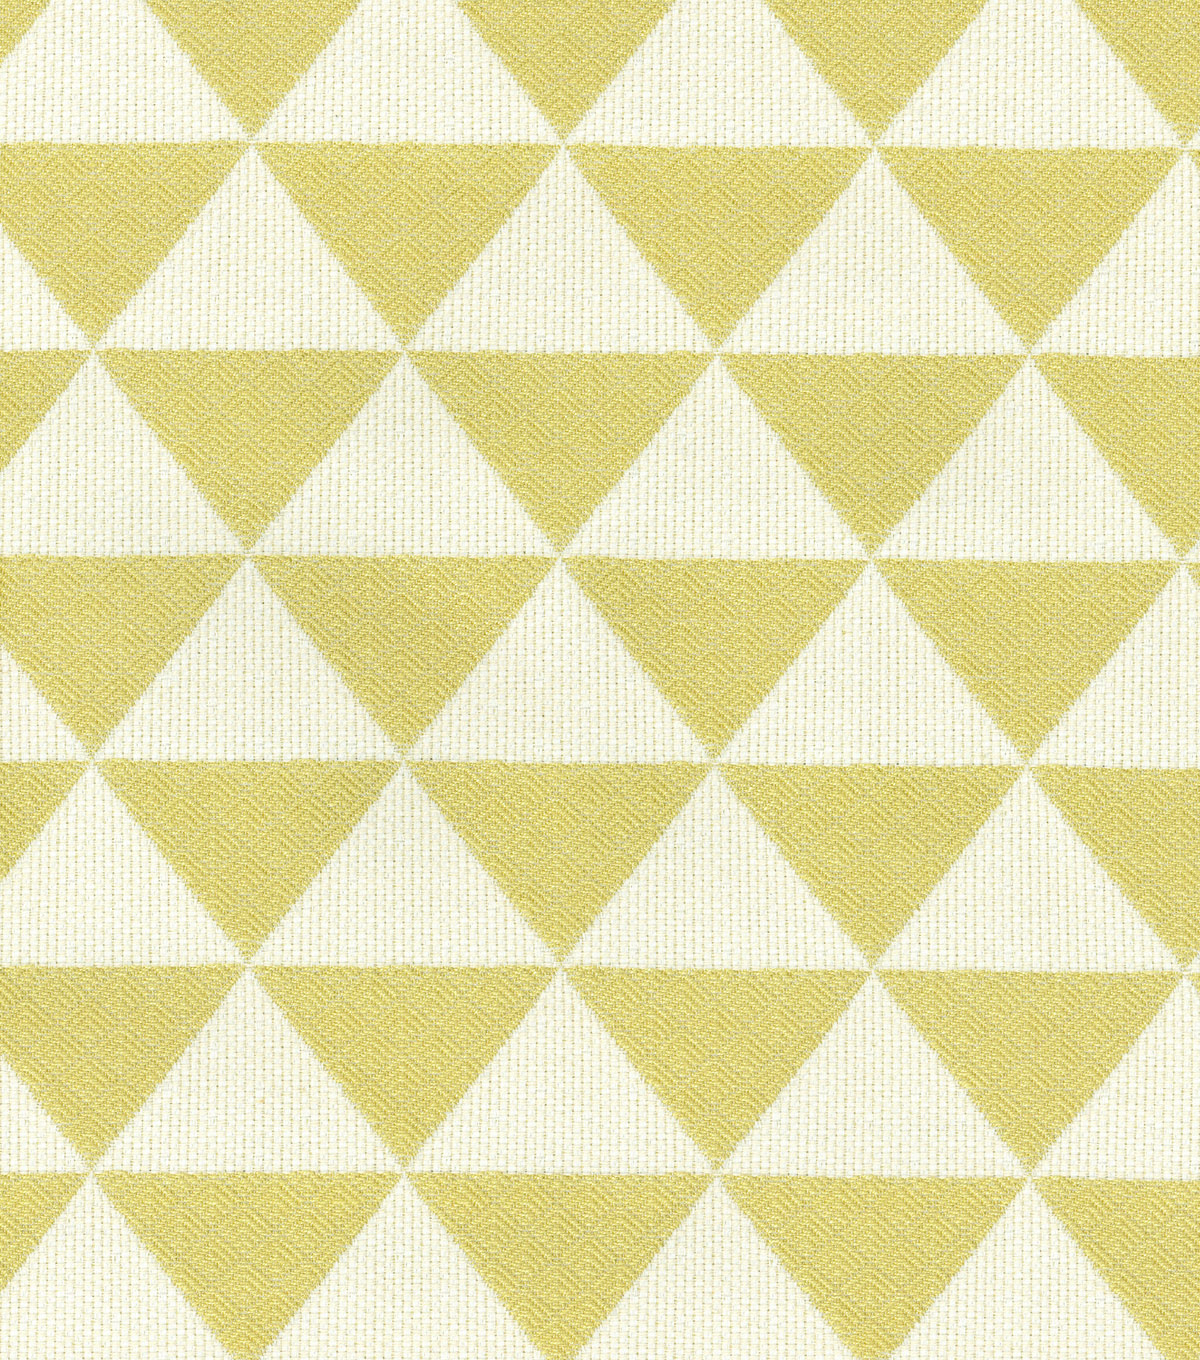 HGTV Home Upholstery Fabric-Tribeca/Lemongrass